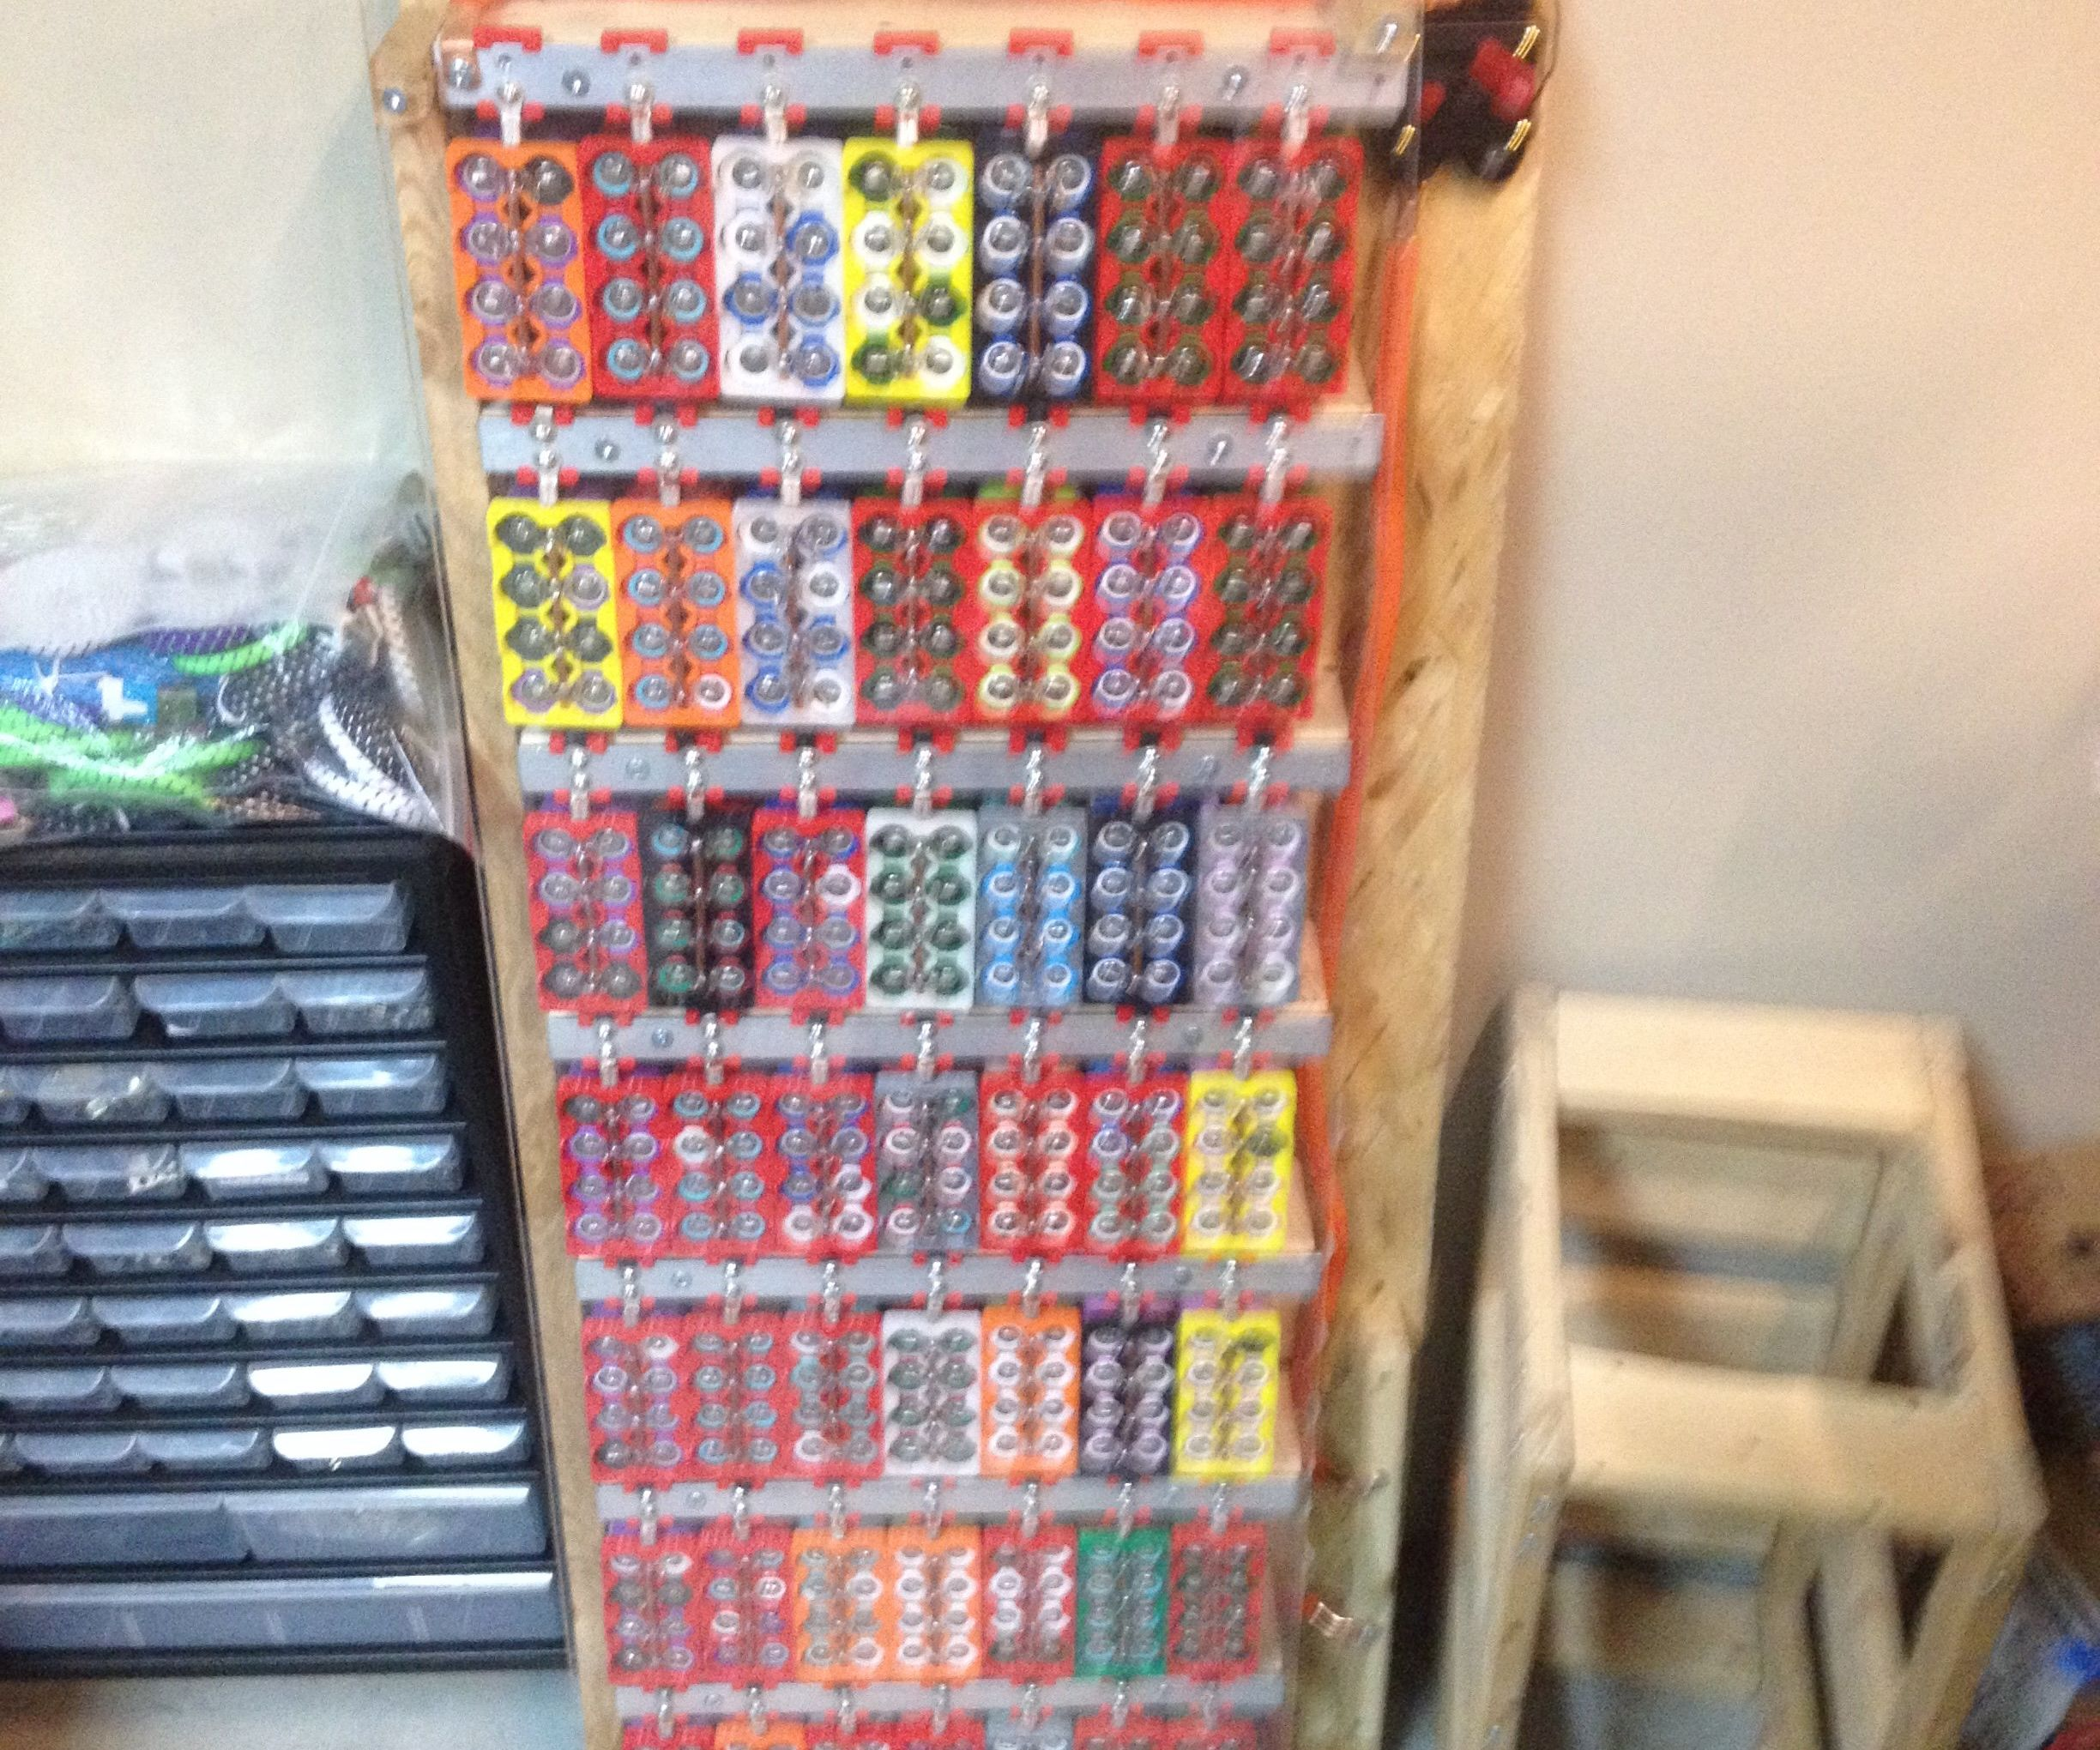 2.4kWh DIY Powerwall From Recycled 18650 Lithium-ion Laptop Batteries